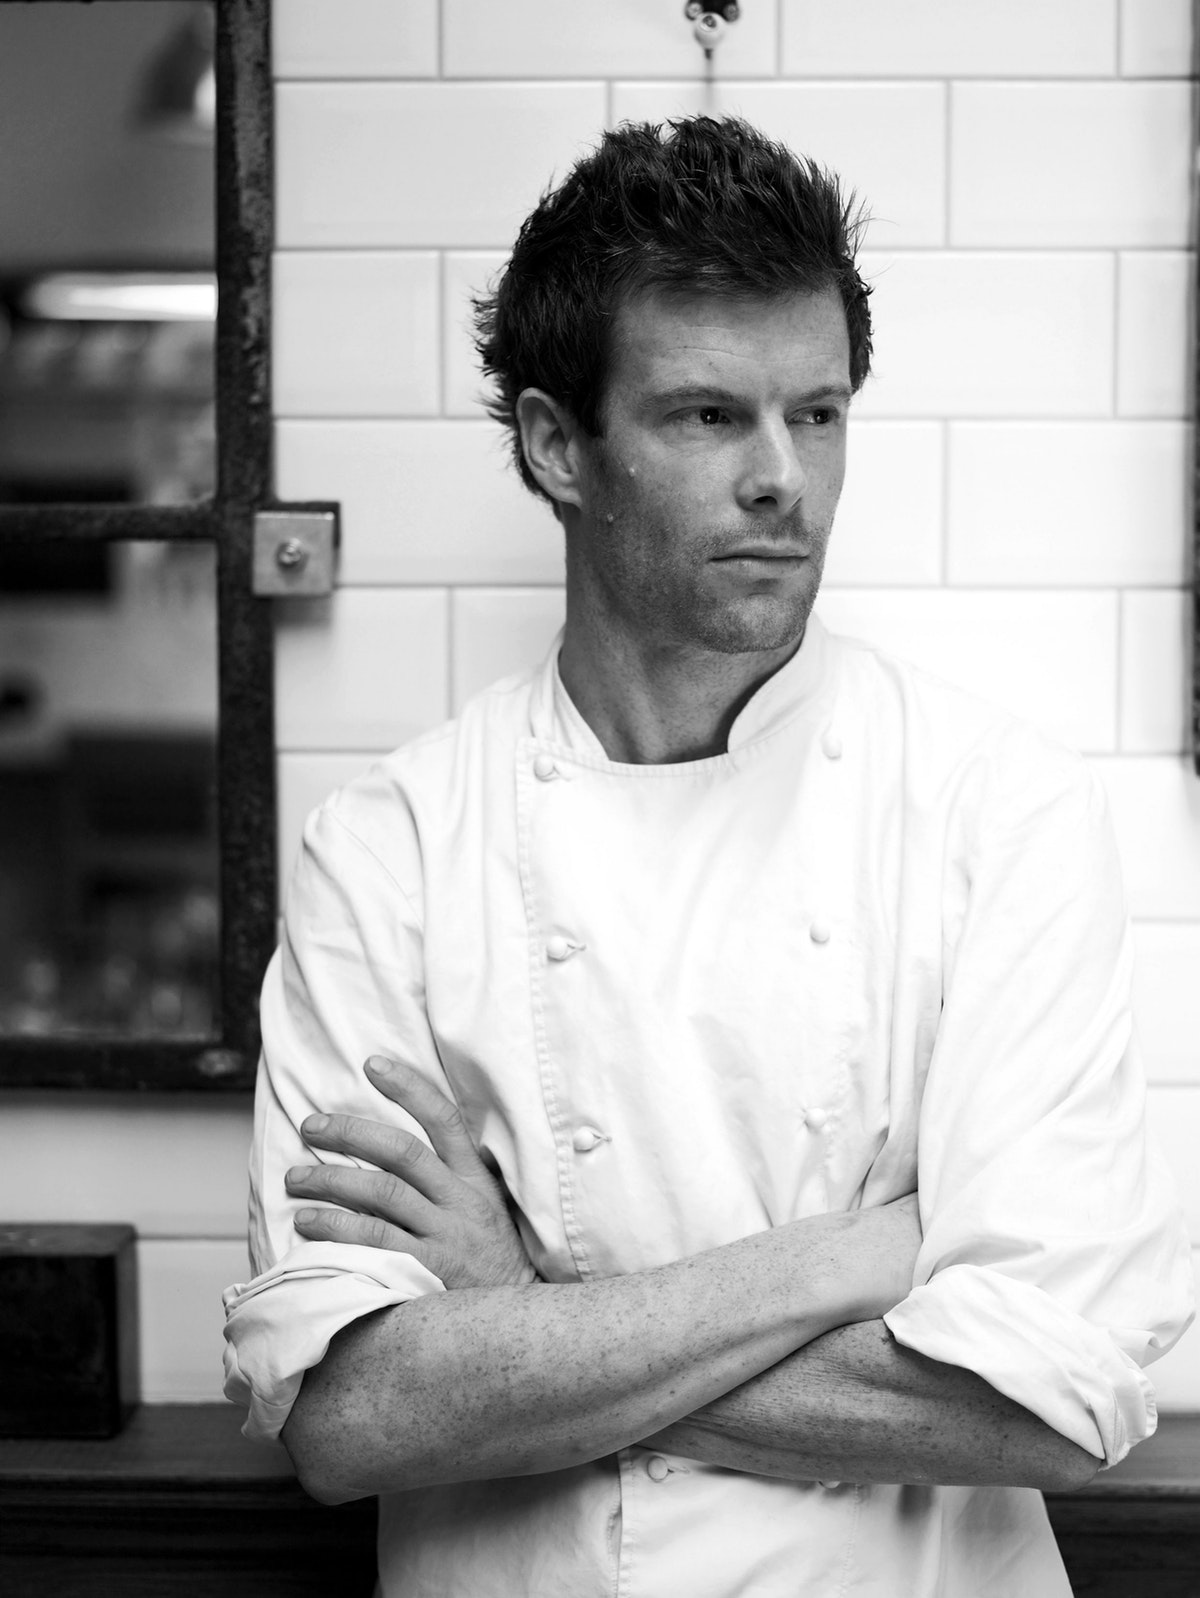 All the Best - Tom Aikens